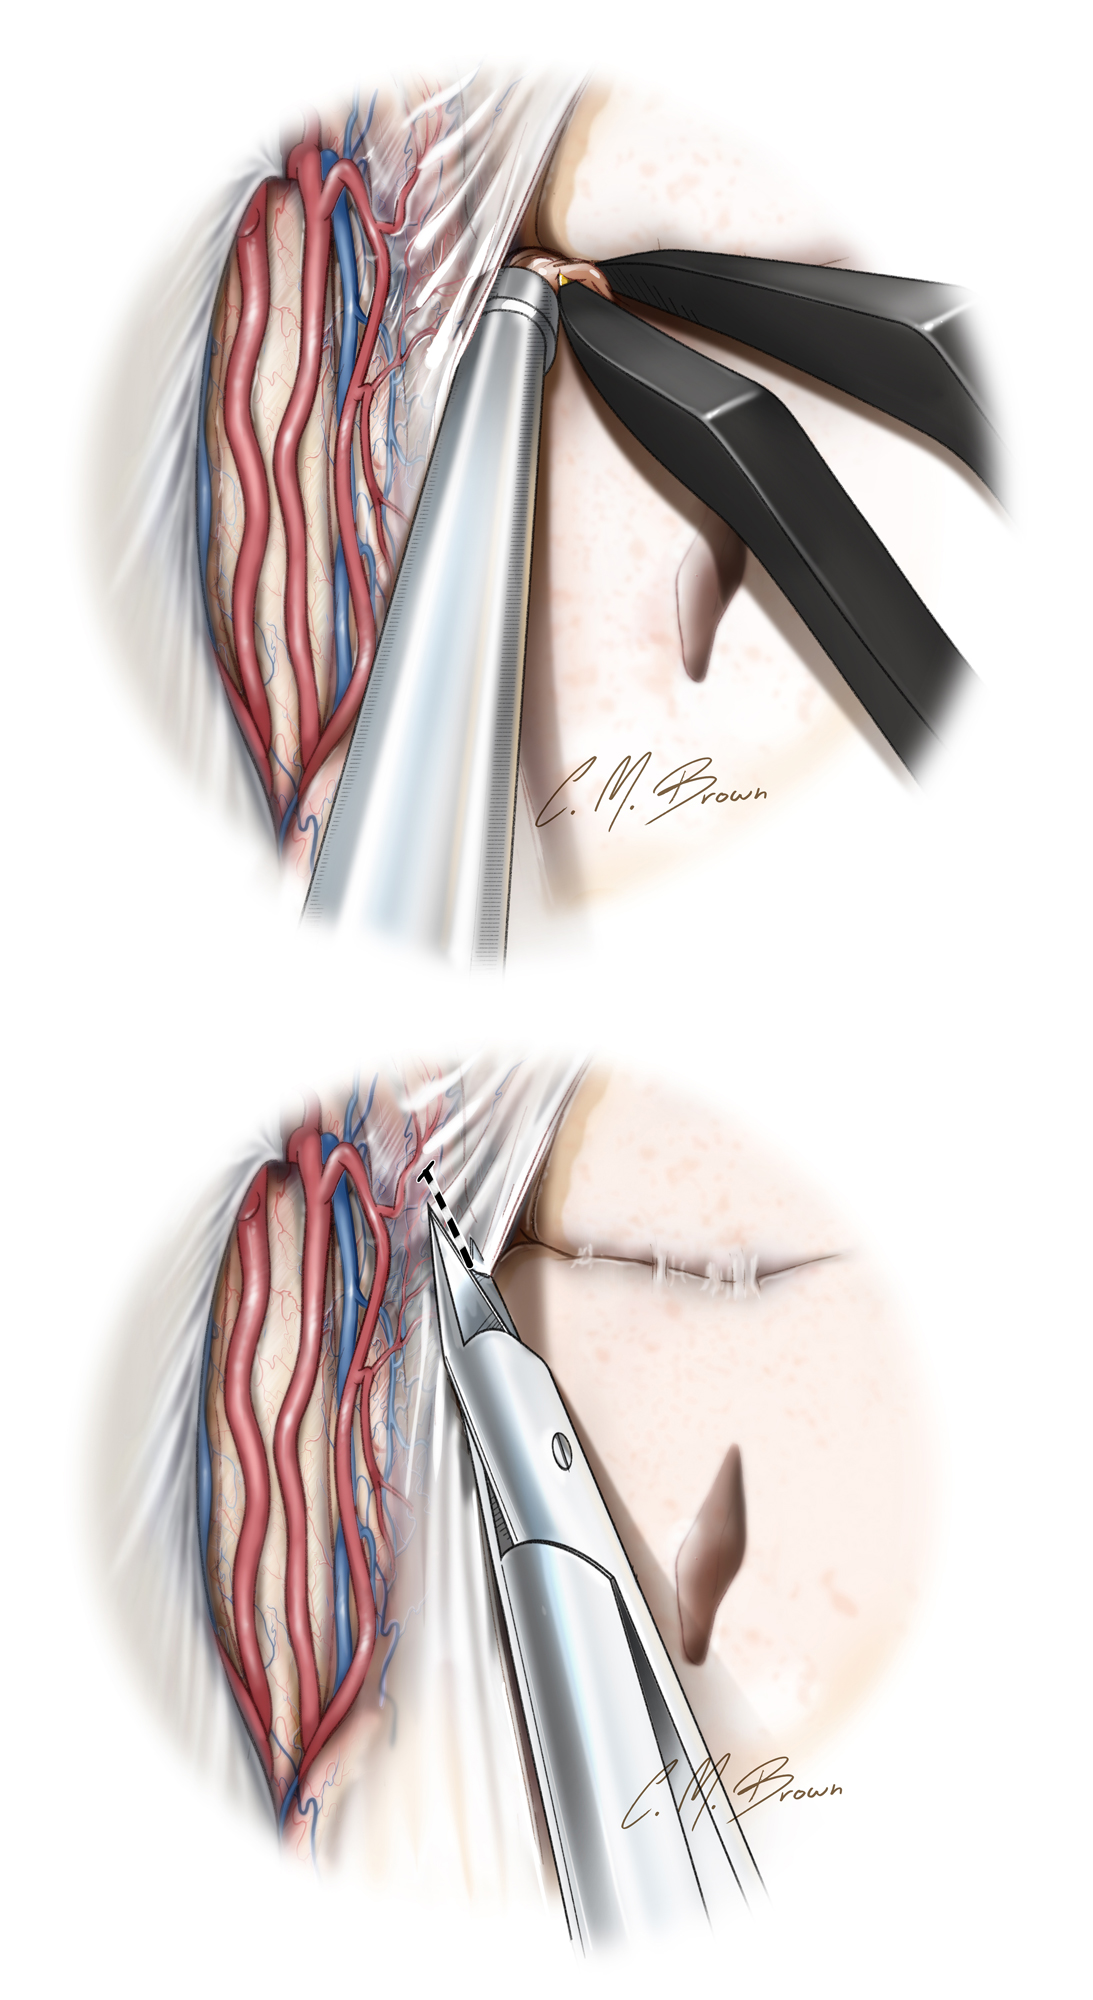 Figure 9: The subpial removal of the brain tissue is demonstrated. This important technique is frequently utilized in epilepsy surgery to protect the epipial  en passage  arteries. The pia is incised to the level of the cingulum (top) and the bipolar forceps are used to fragment the gyrus after which the suction device evacuates the fragmented tissue subpially. This maneuver completes the medial transection for the lobectomy.